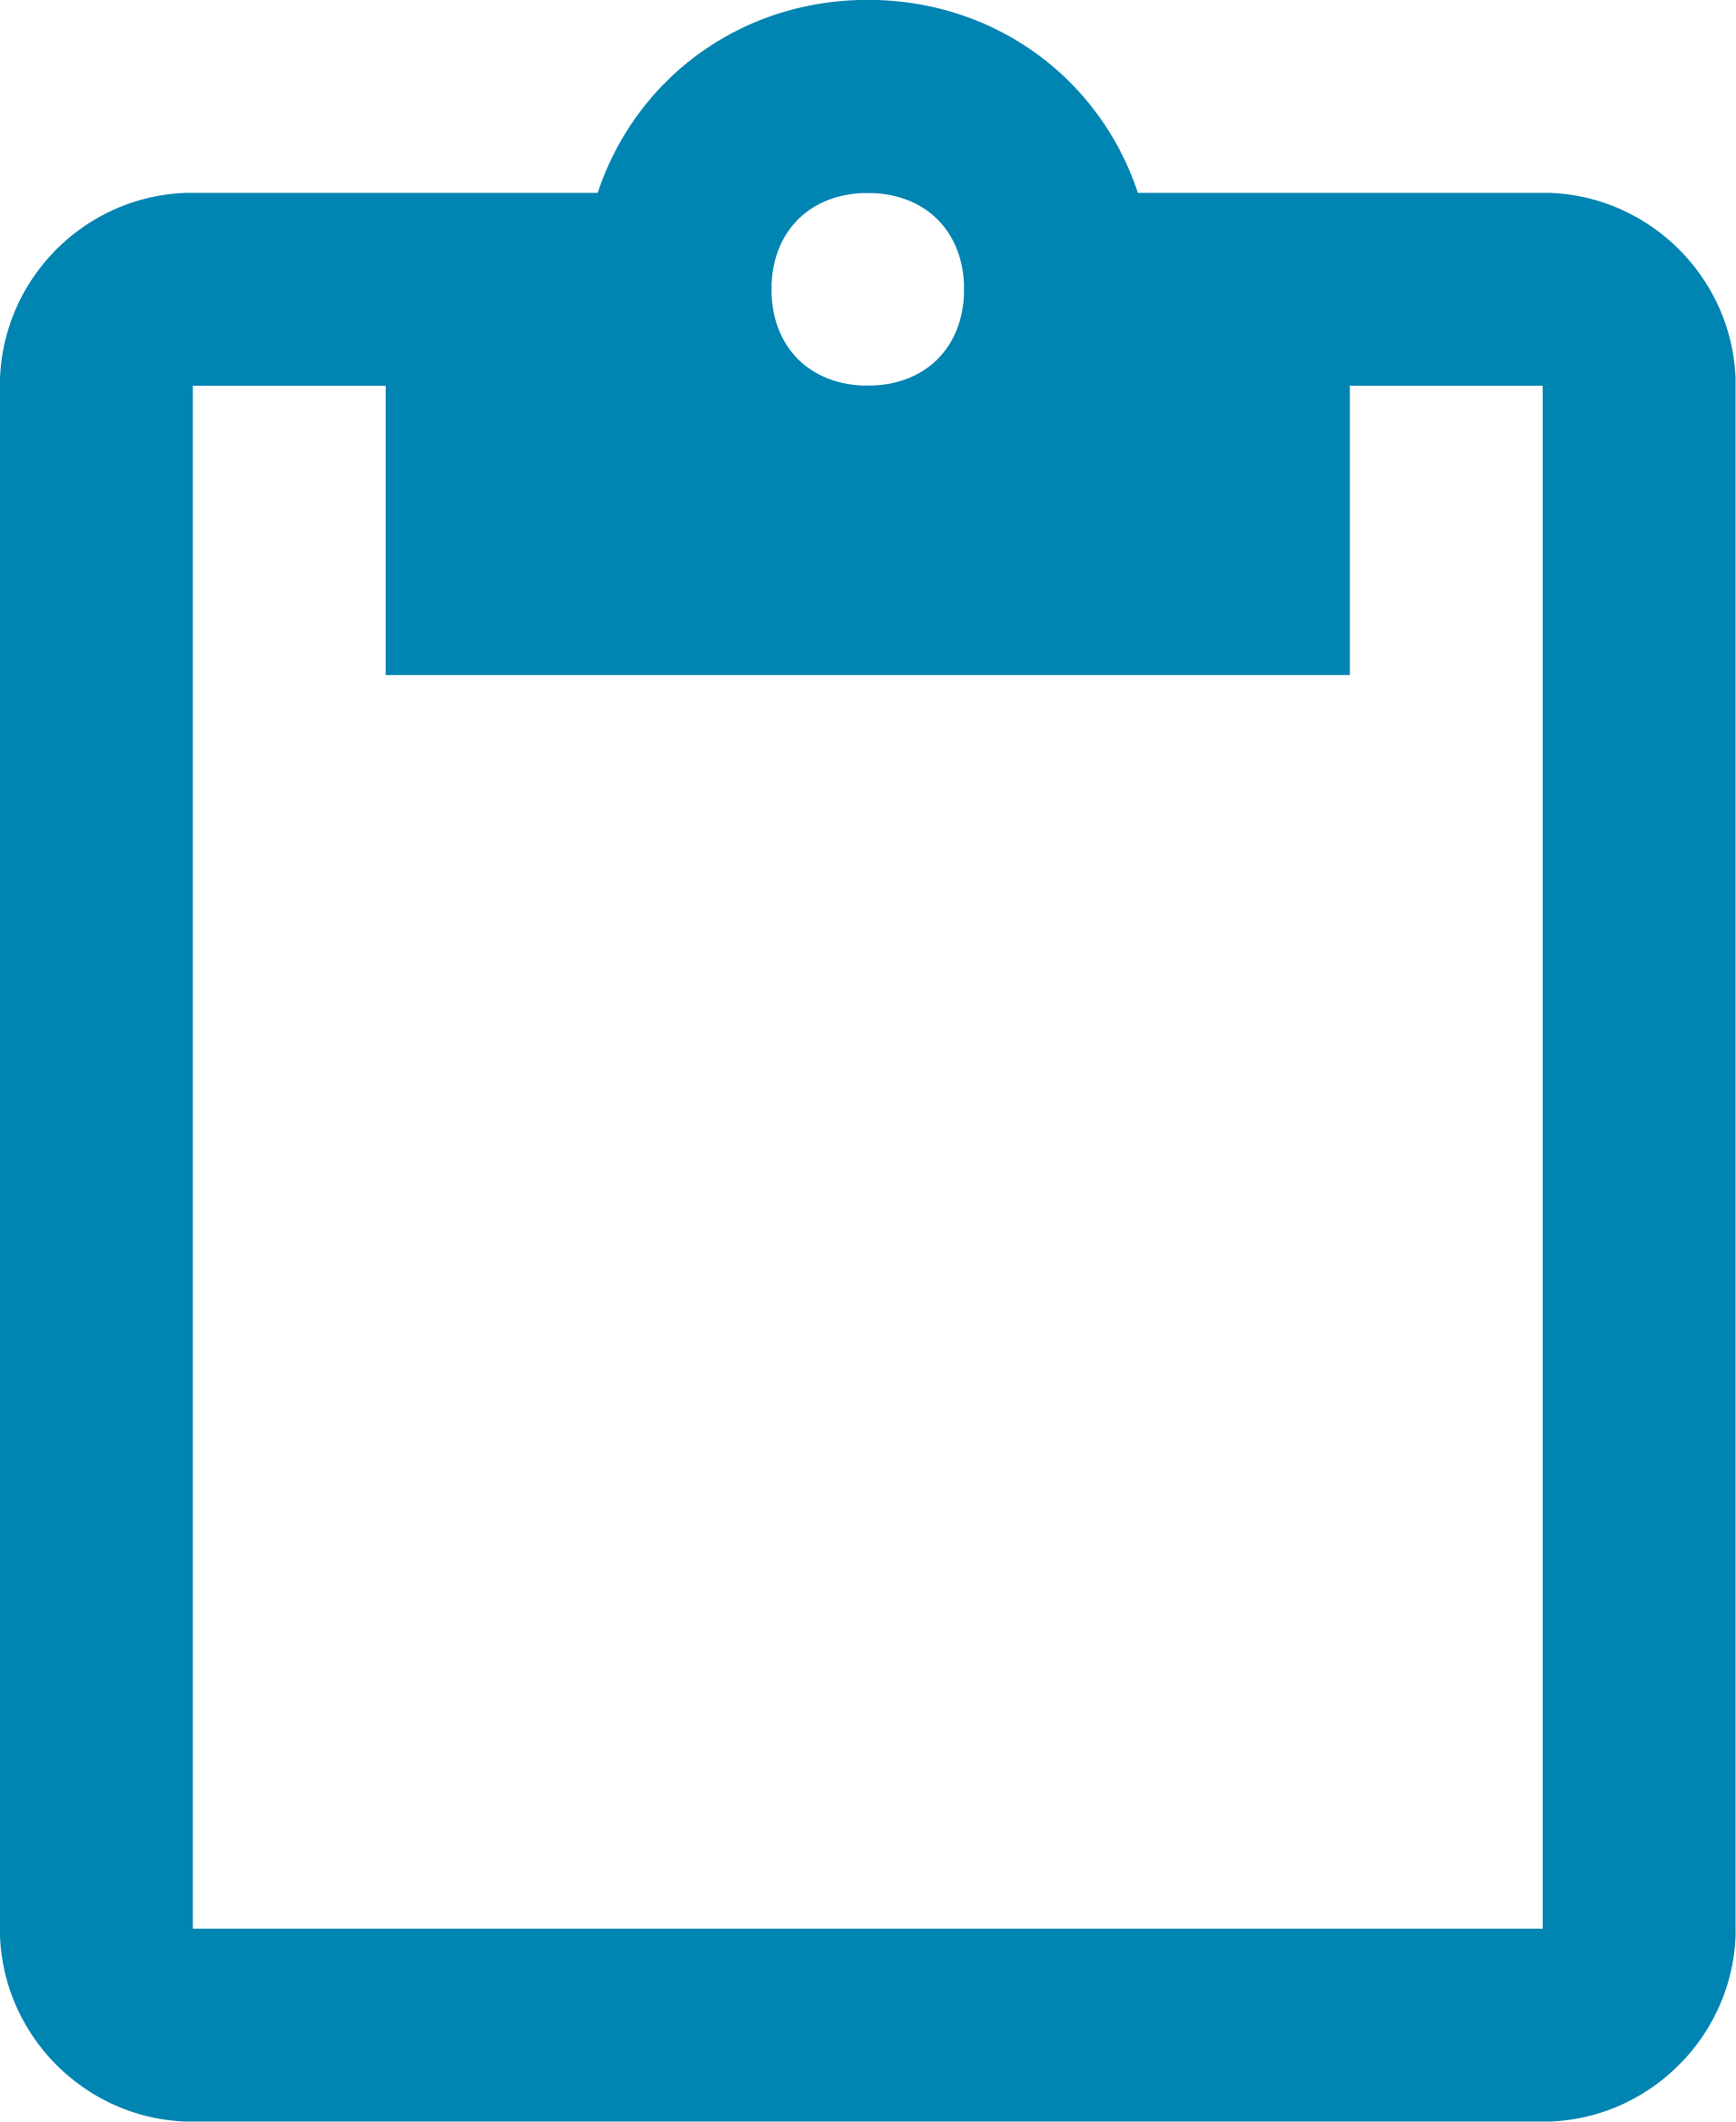 Transparent clipboard clipart - Practice Areas - Icon